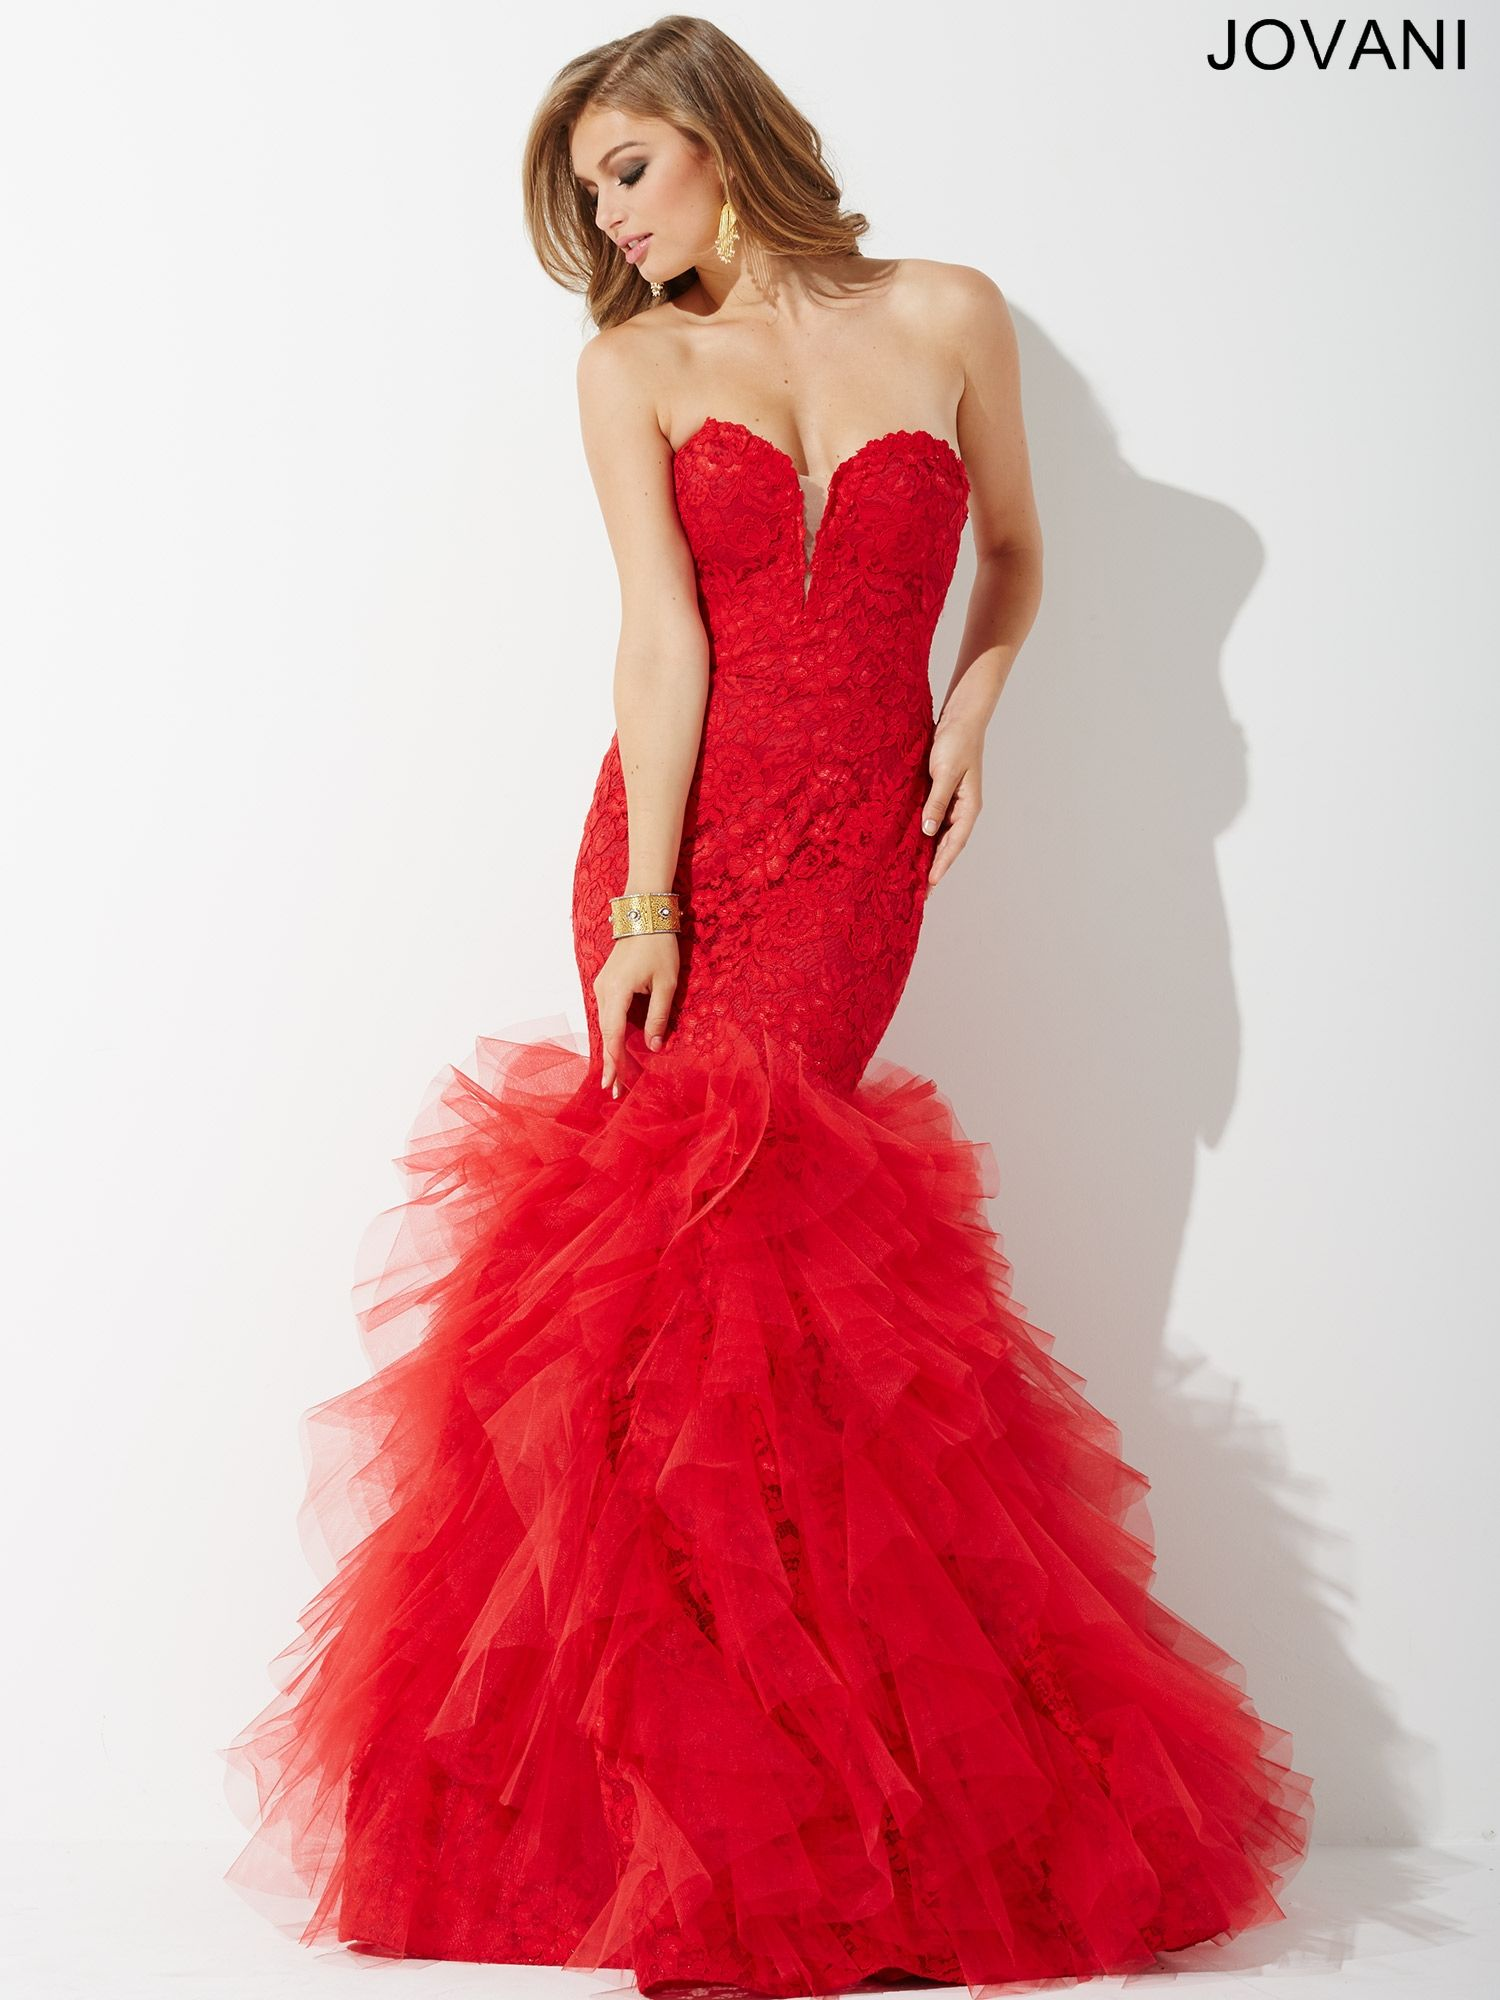 Stunning Strapless Lace Mermaid Gown Features Sweetheart Neckline